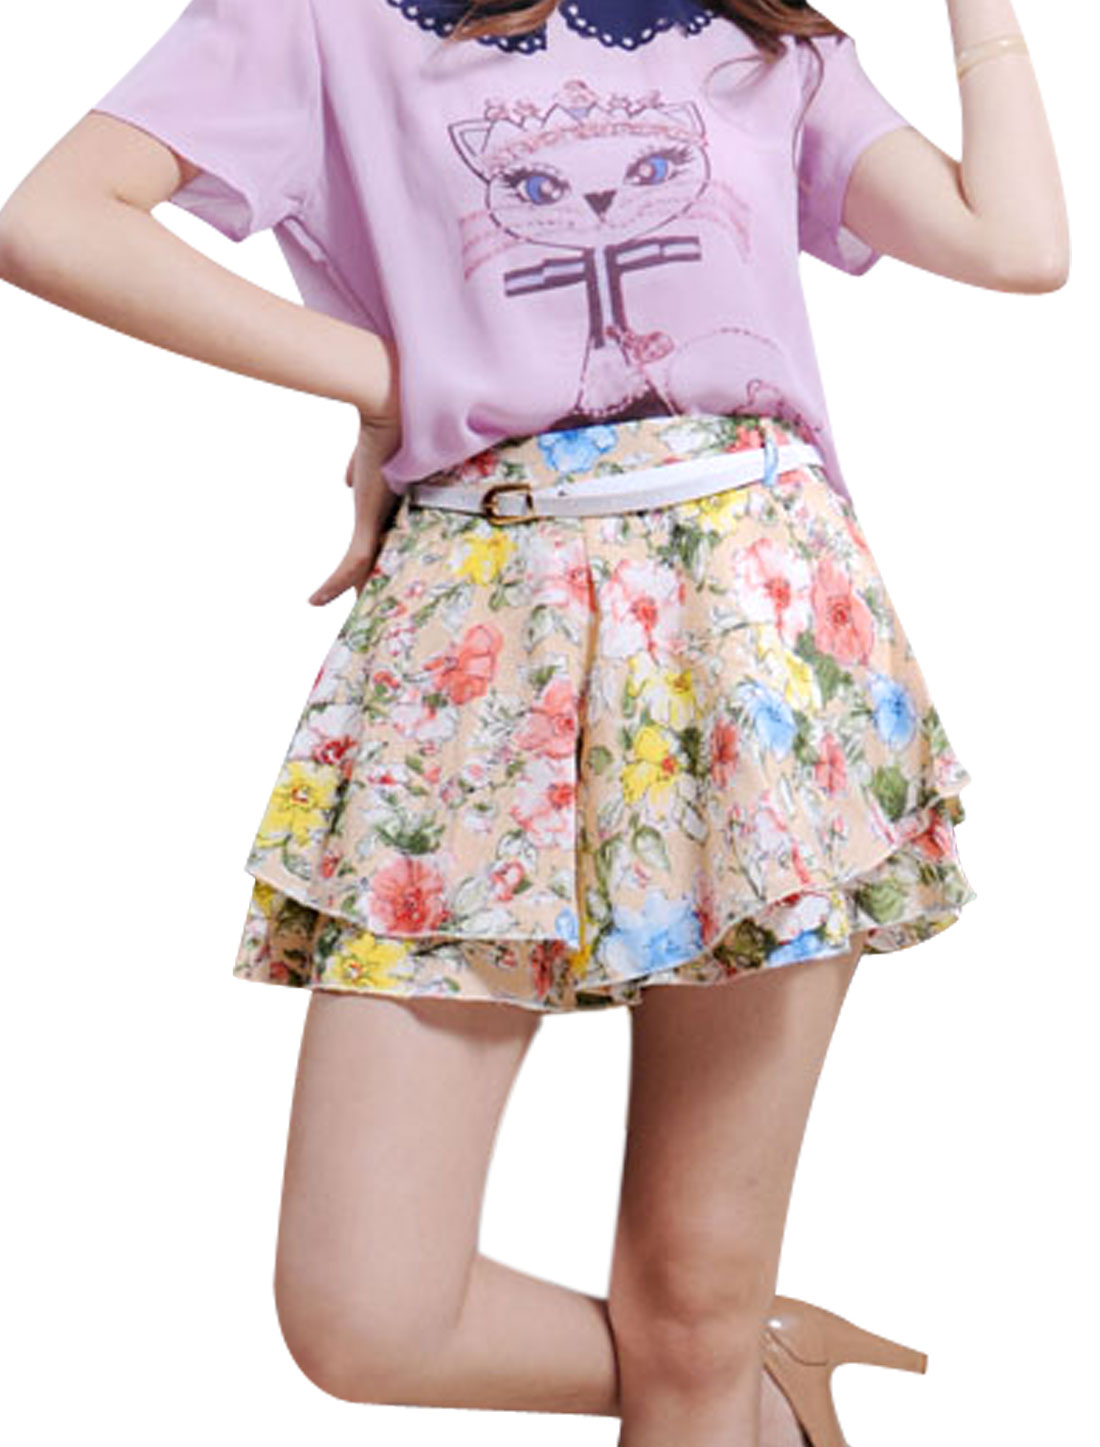 Lady Belt Loop Floral Prints Tiered Design Shorts w Belt Pink XS